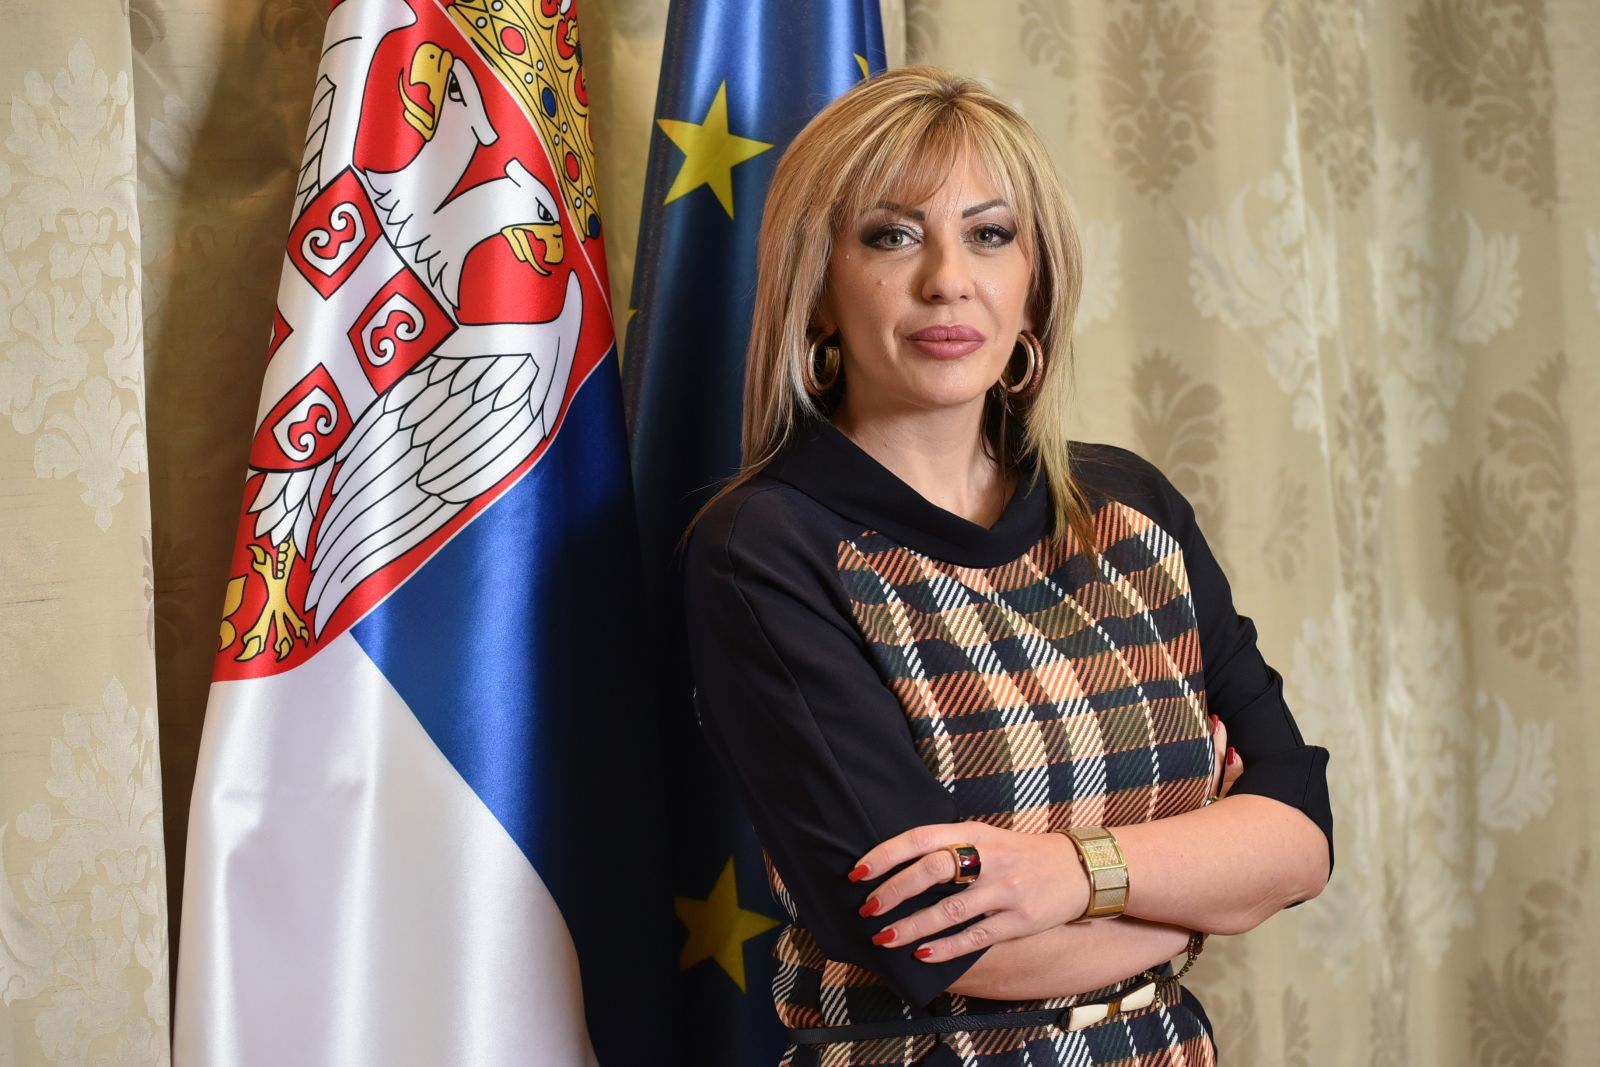 J. Joksimović: We are committed to the EU for peace and progress of our citizens